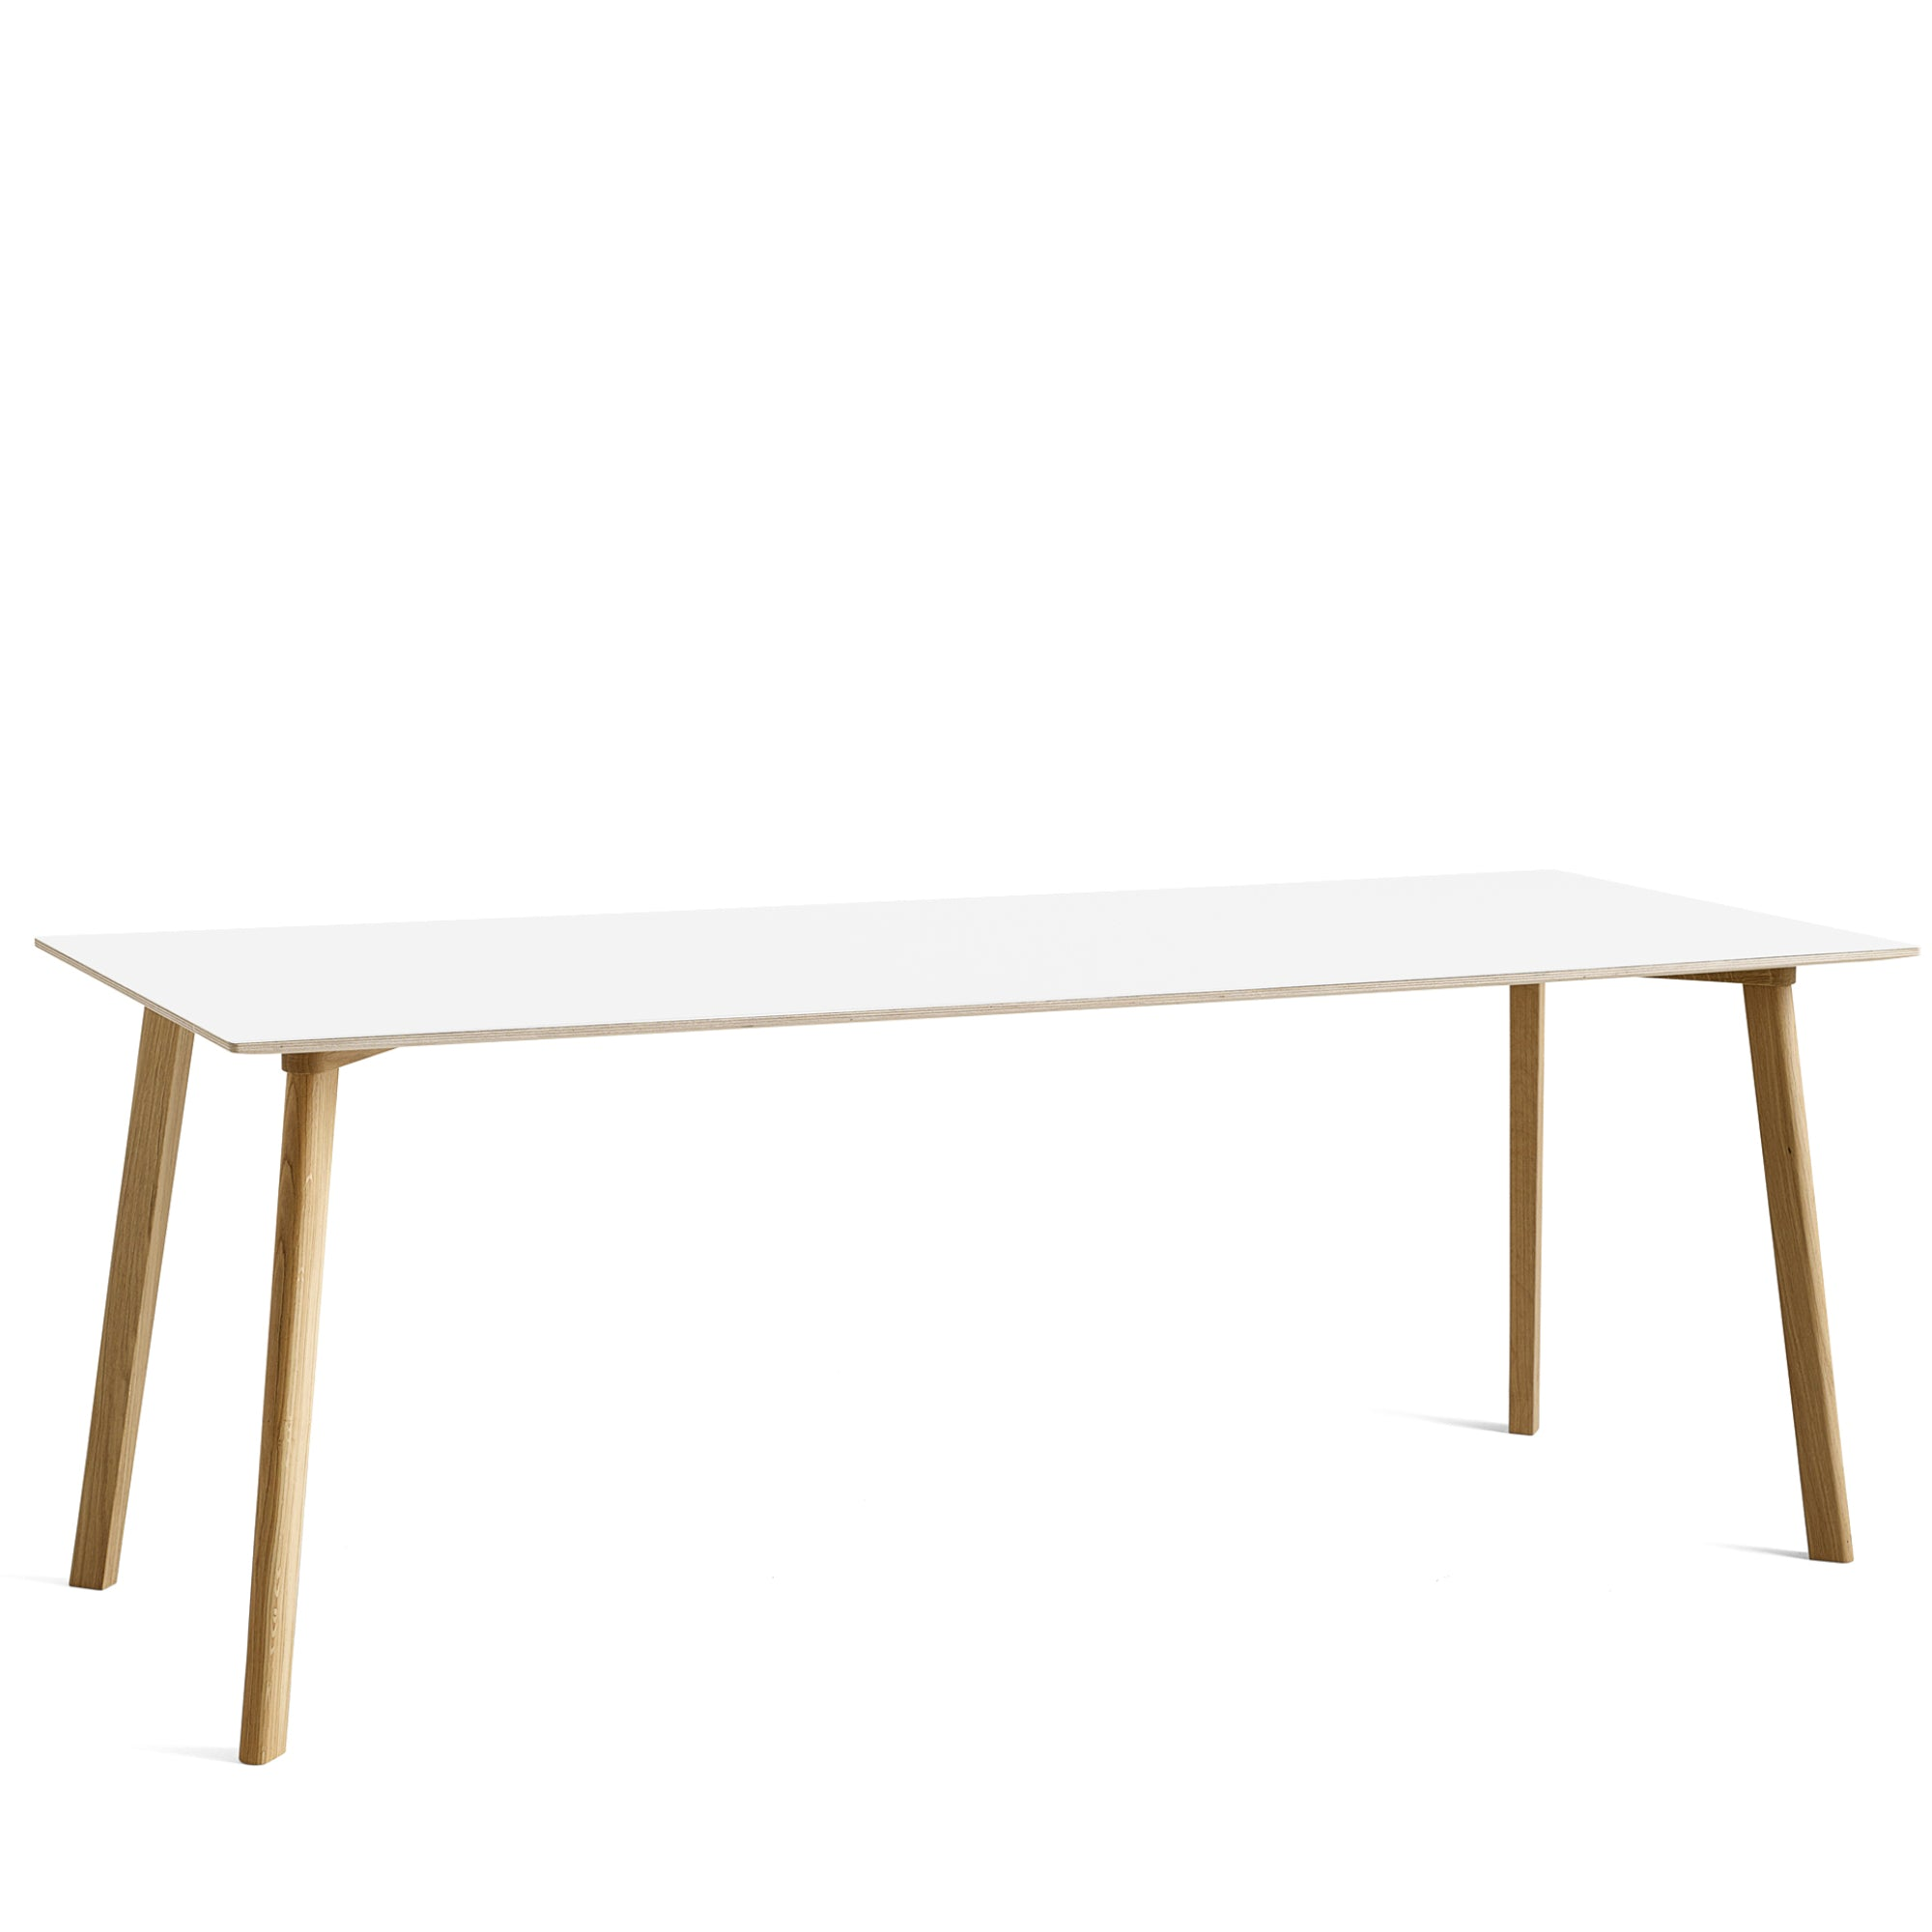 HAY CPH Deux 210 2000mm Pearl White 0029 with Matt Lacquered Oak Base